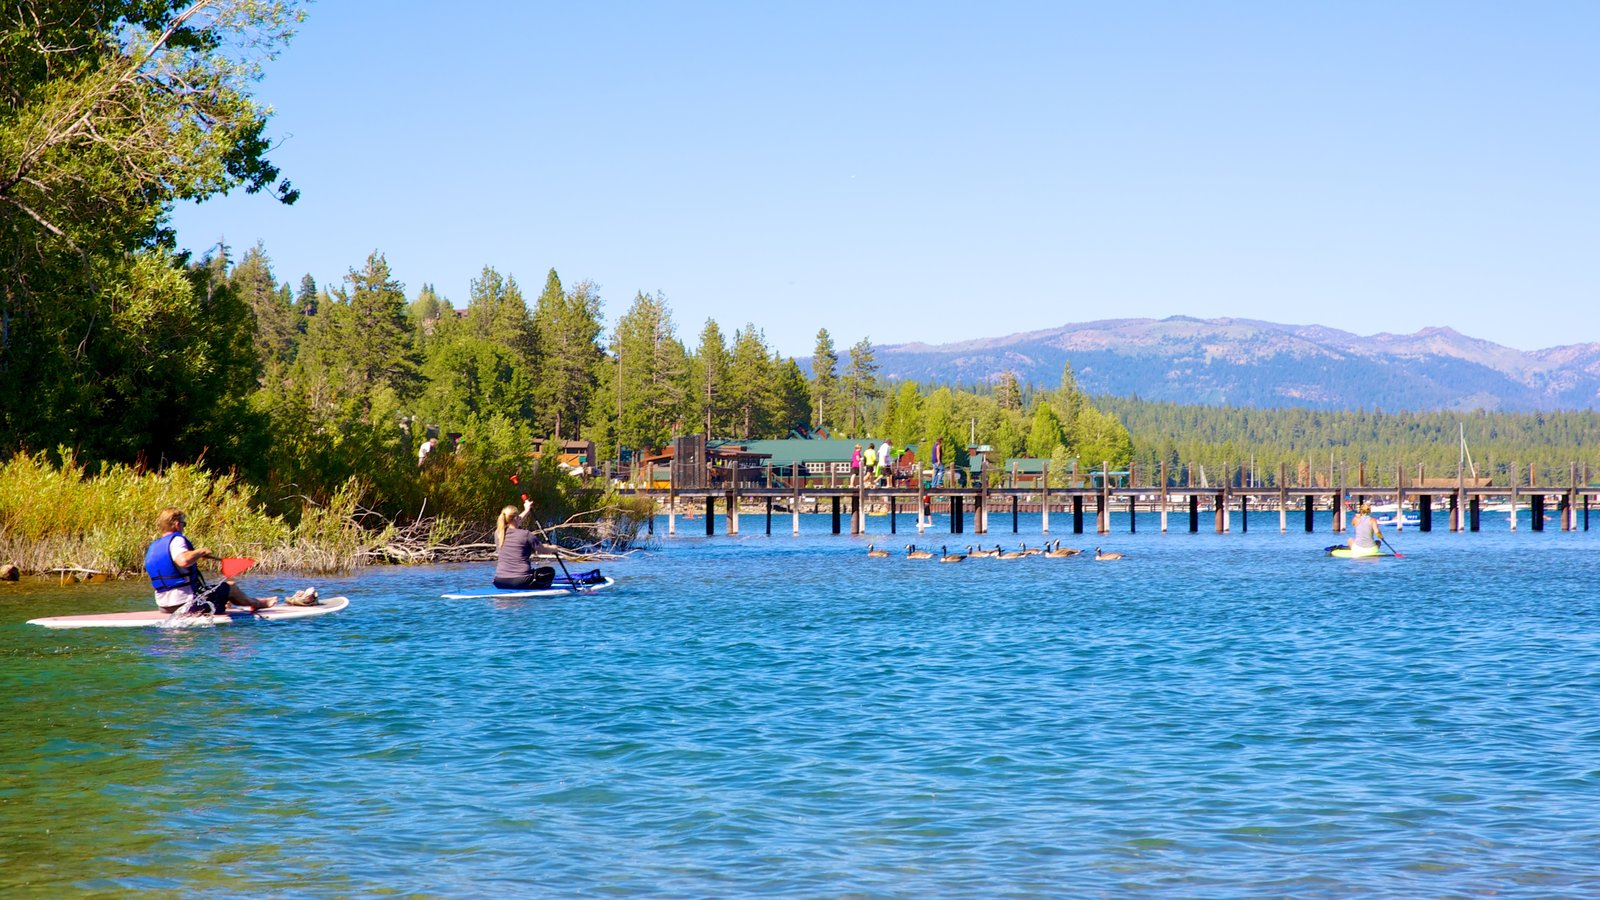 tahoe city Book the basecamp tahoe city in tahoe city & read reviews best price guarantee situated in tahoe city, this motel is within a 5-minute walk of donner lake, tahoe city marina, and watson cabin museum.